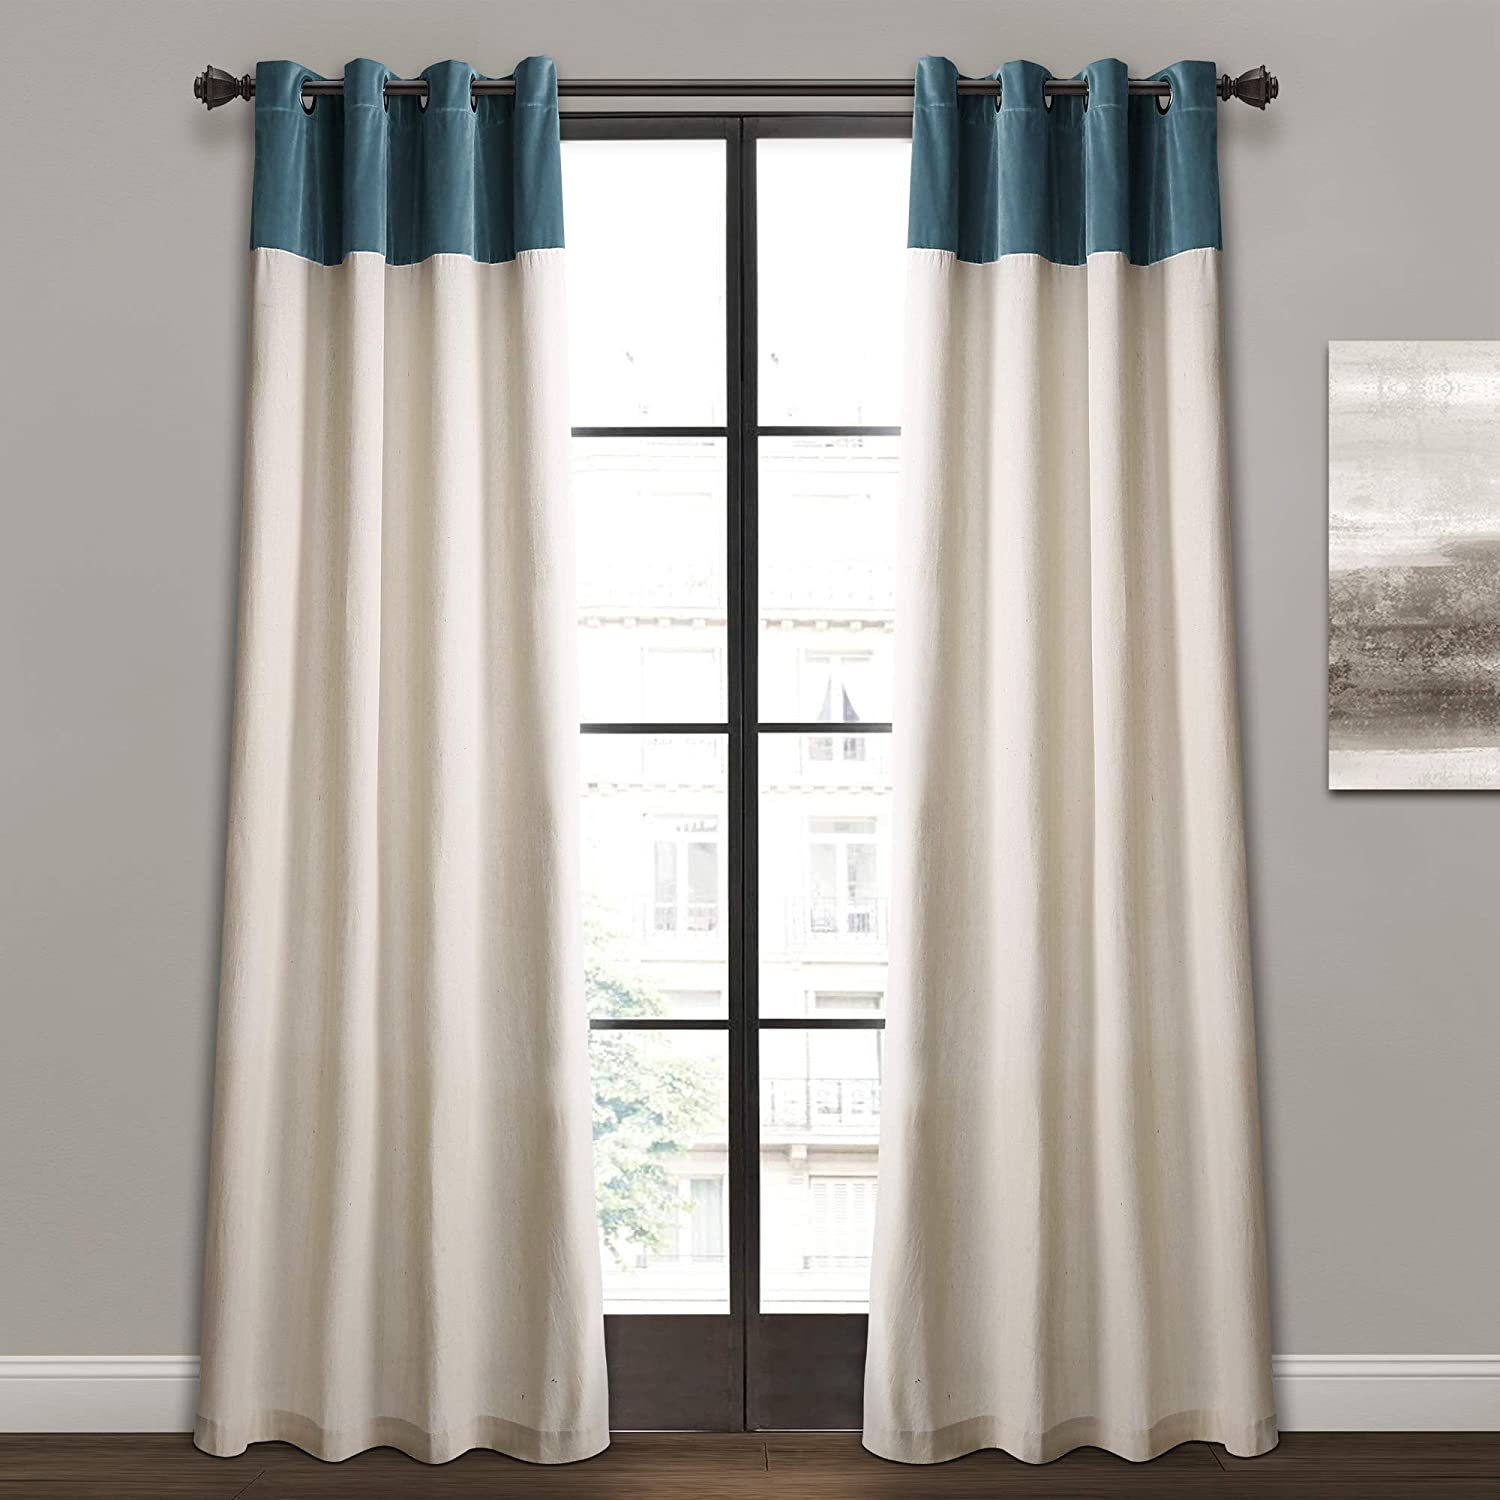 """Pair of Ring Top Eyelet Lined Voile Panel Curtains 46 x 52/"""" Natural Colour Cream"""